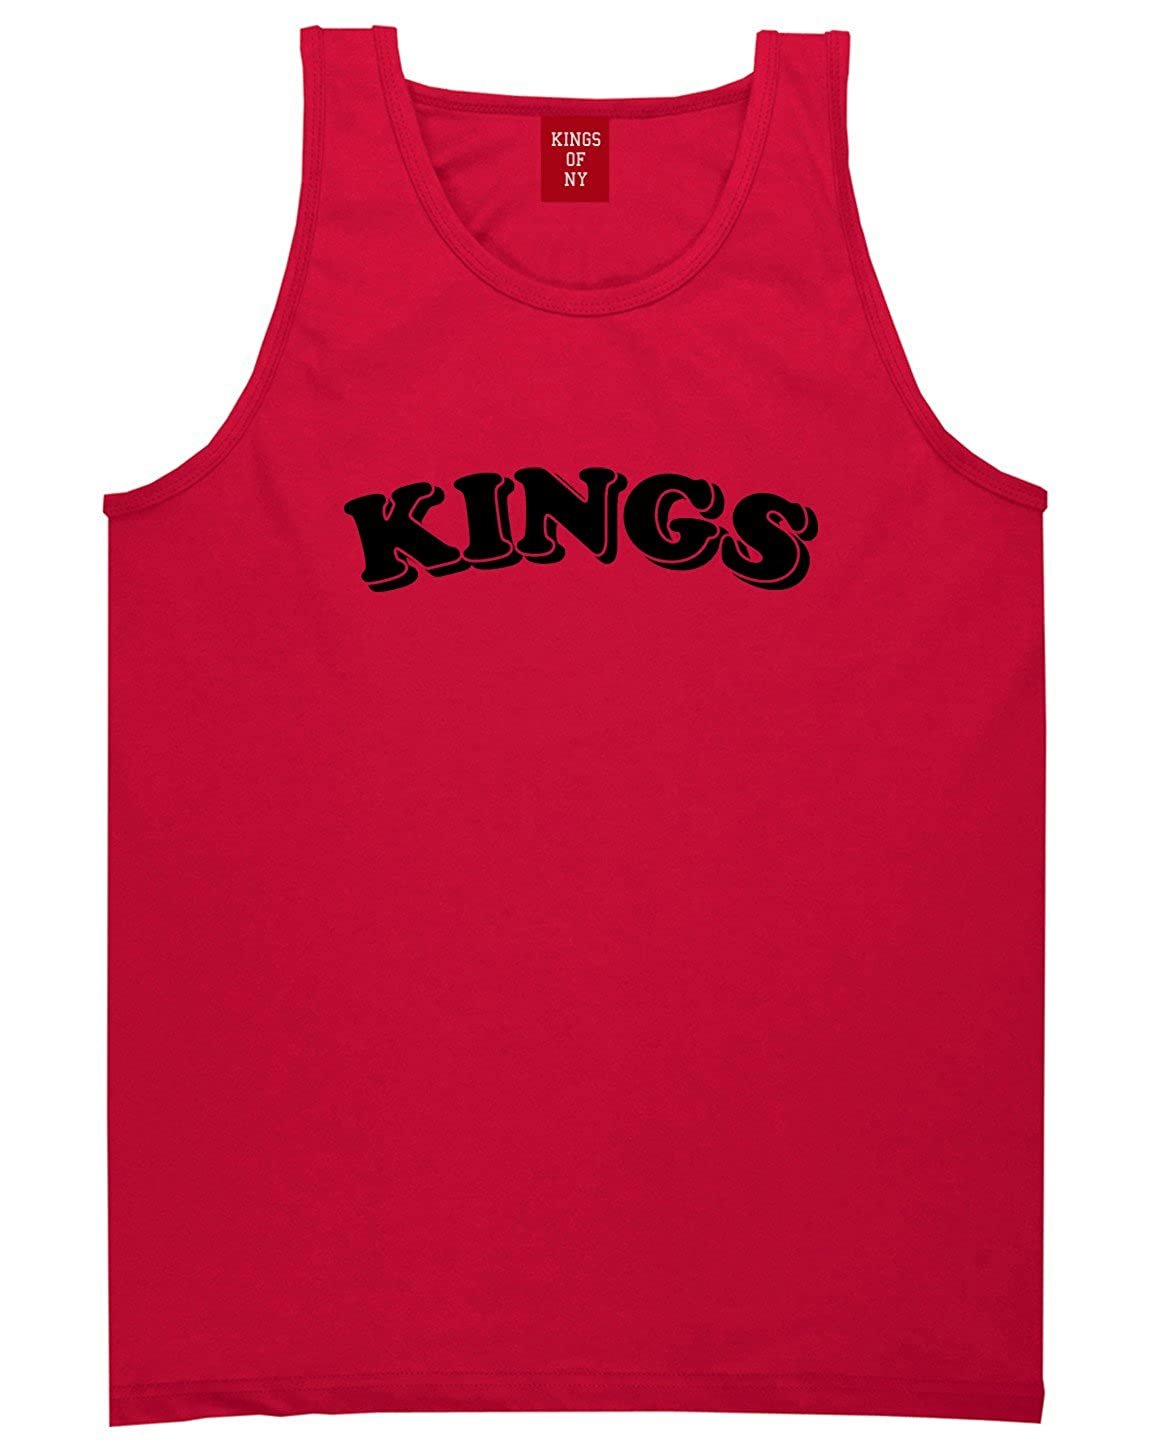 Kings Of NY KINGS Bubble Letters Mens Tank Top